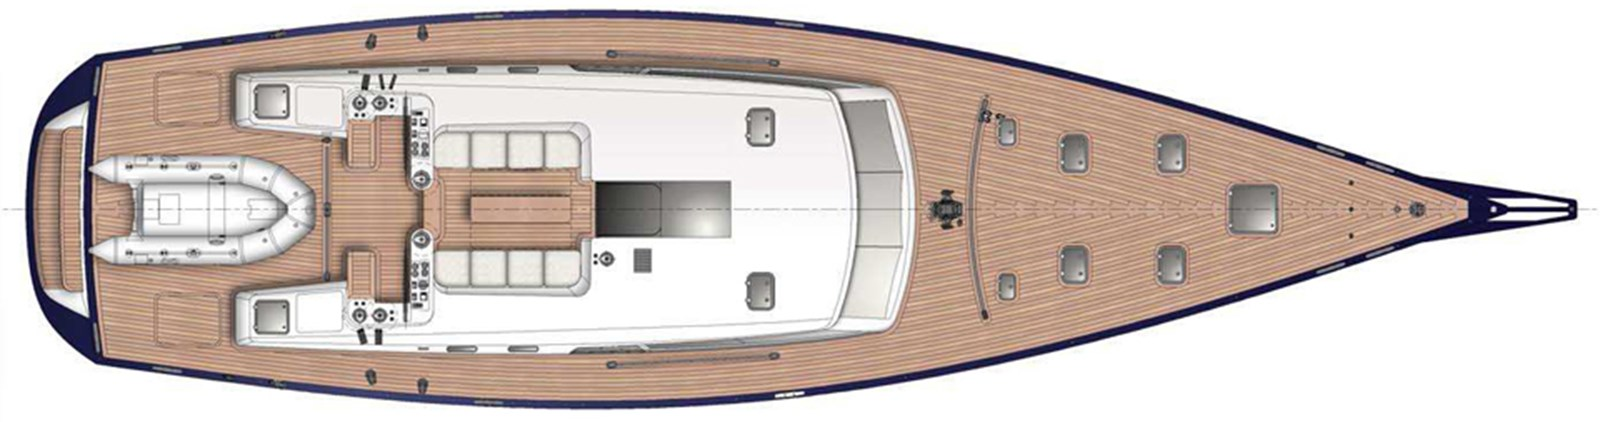 Layout 2 2009 CHANTIERS NAVALS GARCIA Garcia 75 Cruising Sailboat 2825914